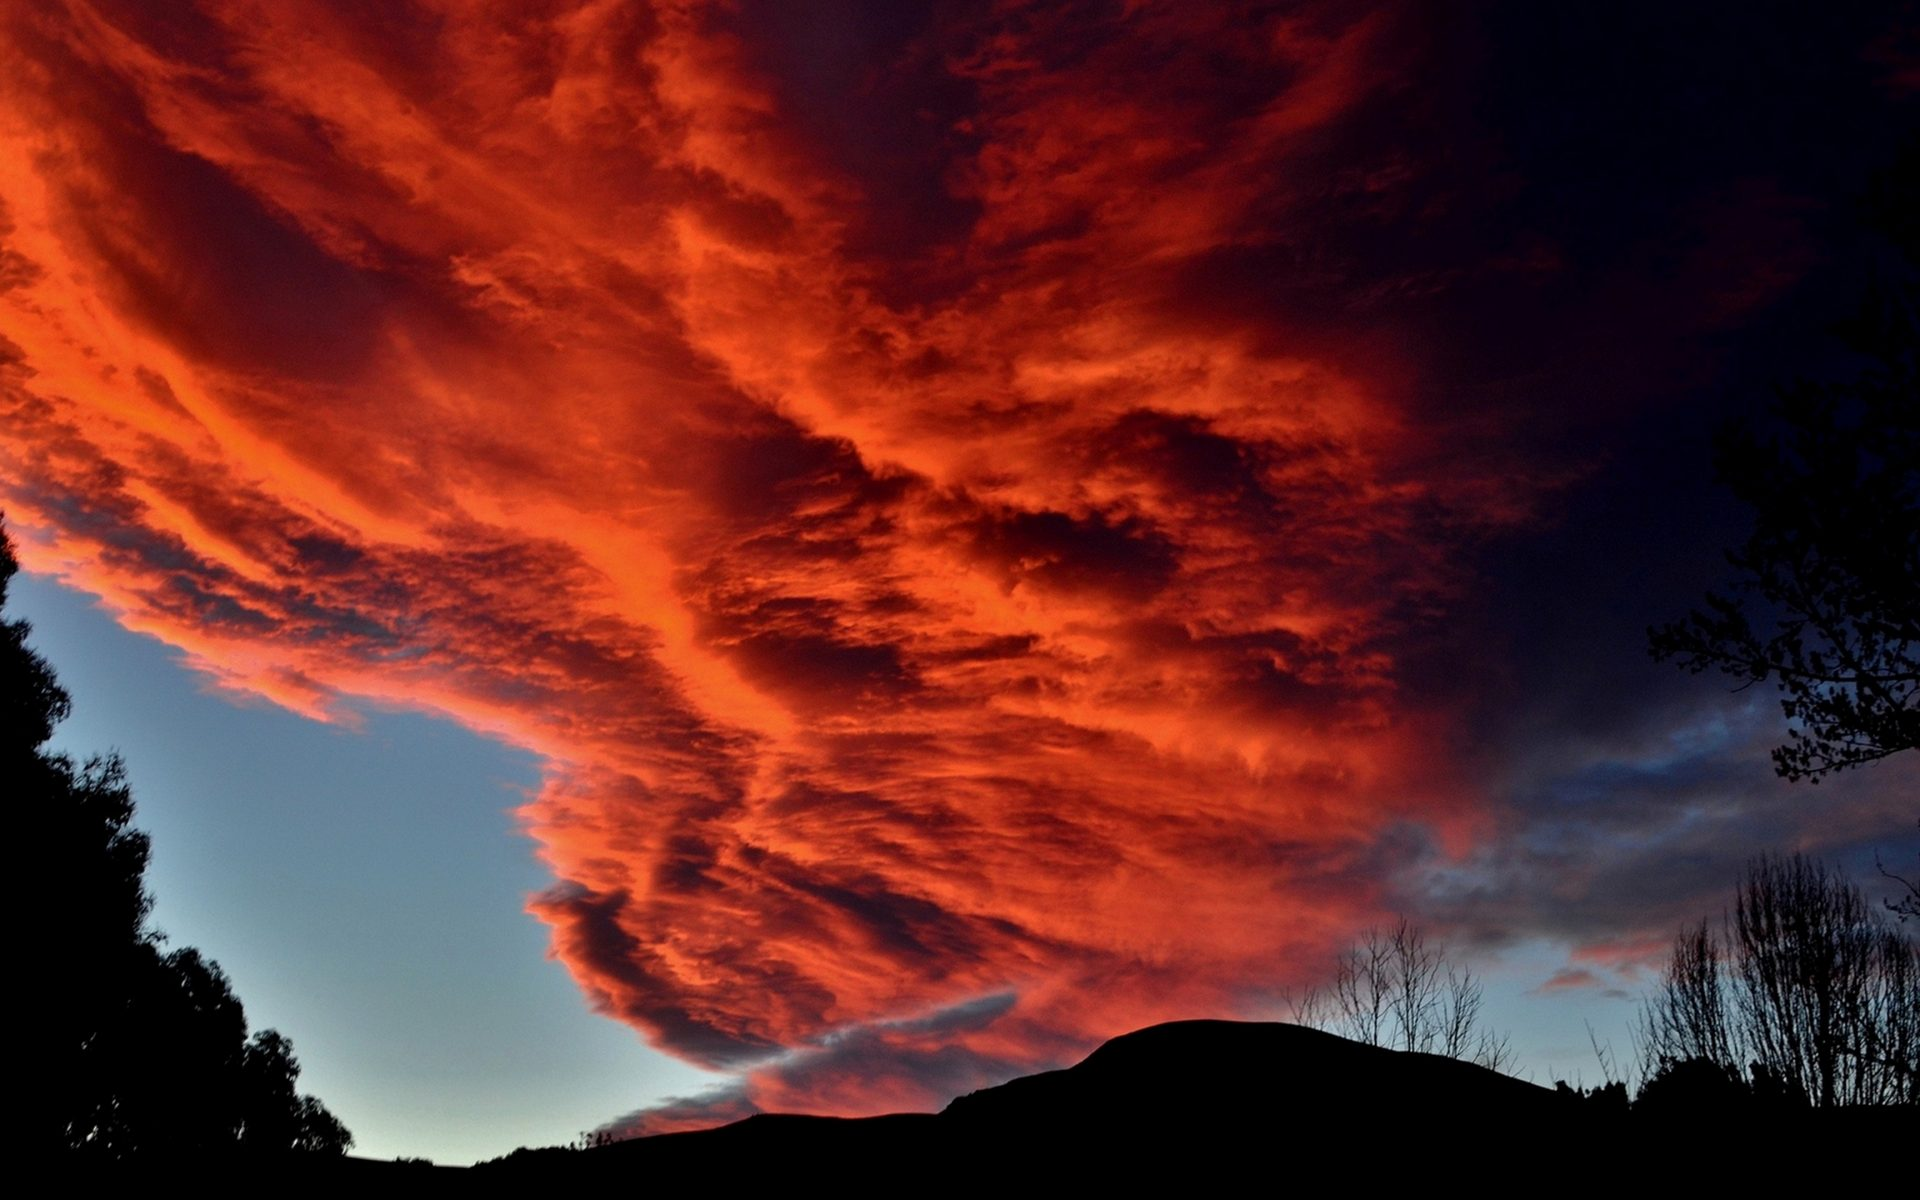 Red clouds wallpaper 4k hd wallpaper background - Background images 4k hd ...